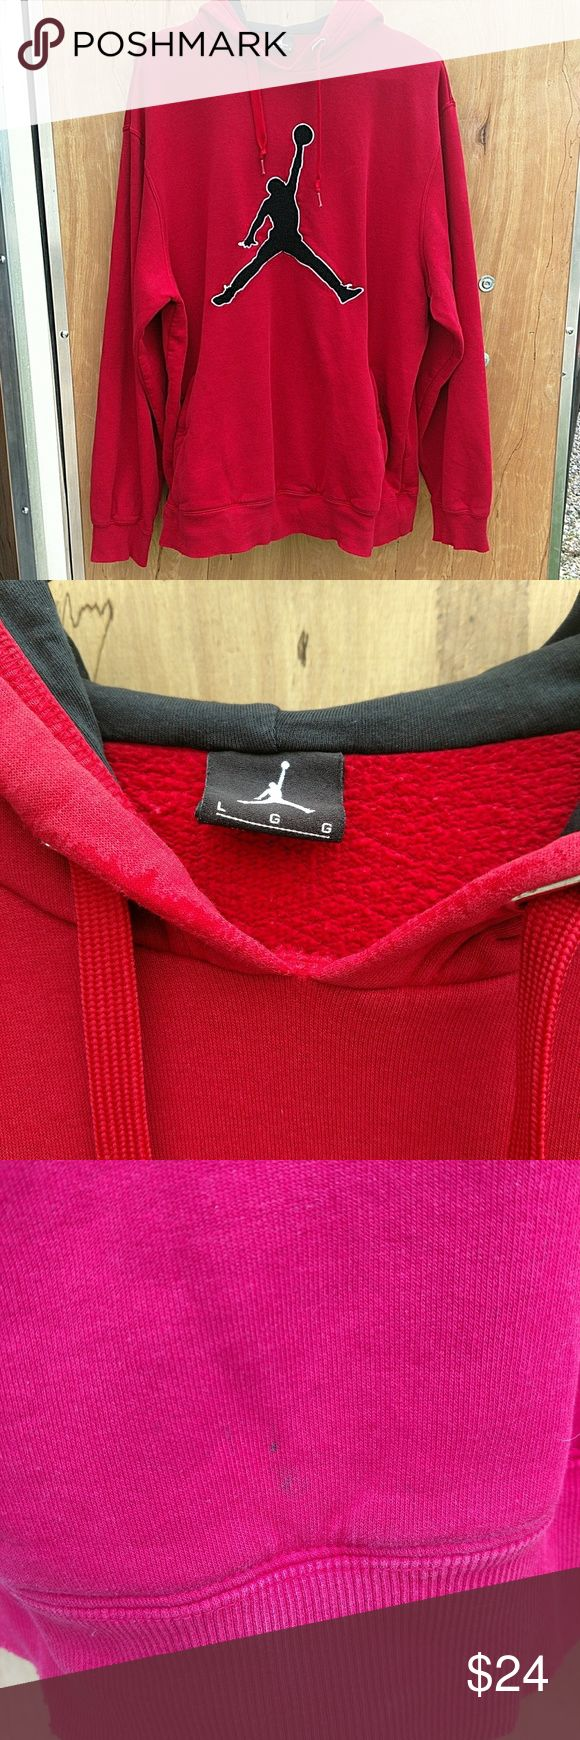 """NIKE AIR JORDAN MEN'S PULLOVER HOODIE NIKE AIR JORDAN MEN'S PULLOVER HOODIE WITH JUMPMAN PATCH ON CHEST  SIZE LARGE ARMPIT TO ARMPIT: 24"""" SHOULDER TO CUFF: 25.5"""" BASE OF COLLAR TO HEM: 29""""  GOOD CONDITION WITH NO RIPS OR TEARS. THERE IS SOME LIGHT FRAYING ON THE CUFFS AND HEM. ALSO HAS SOME WEAR ON BOTTOM FRONT OF HOOD AND A SMALL STAIN ON FRONT BOTTOM. SEE PICTURES  #1089 Nike Shirts Sweatshirts & Hoodies"""